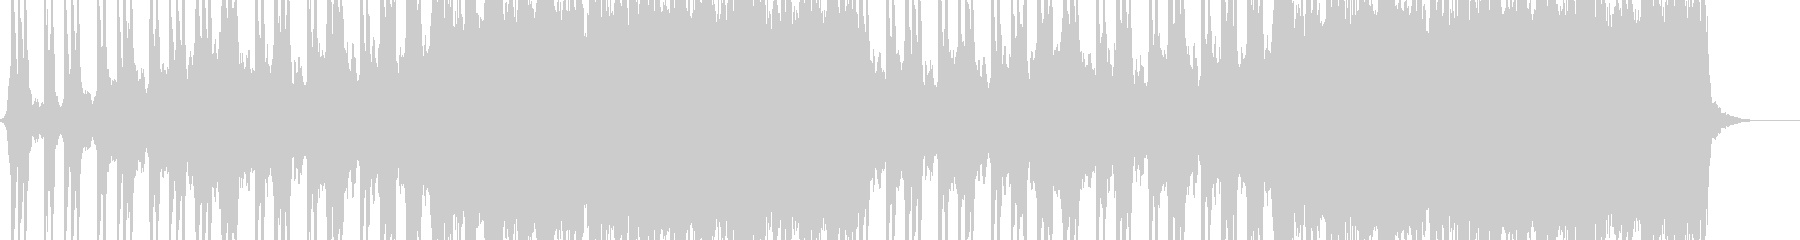 A catchy and memorable guitar riff's unreproduced waveform